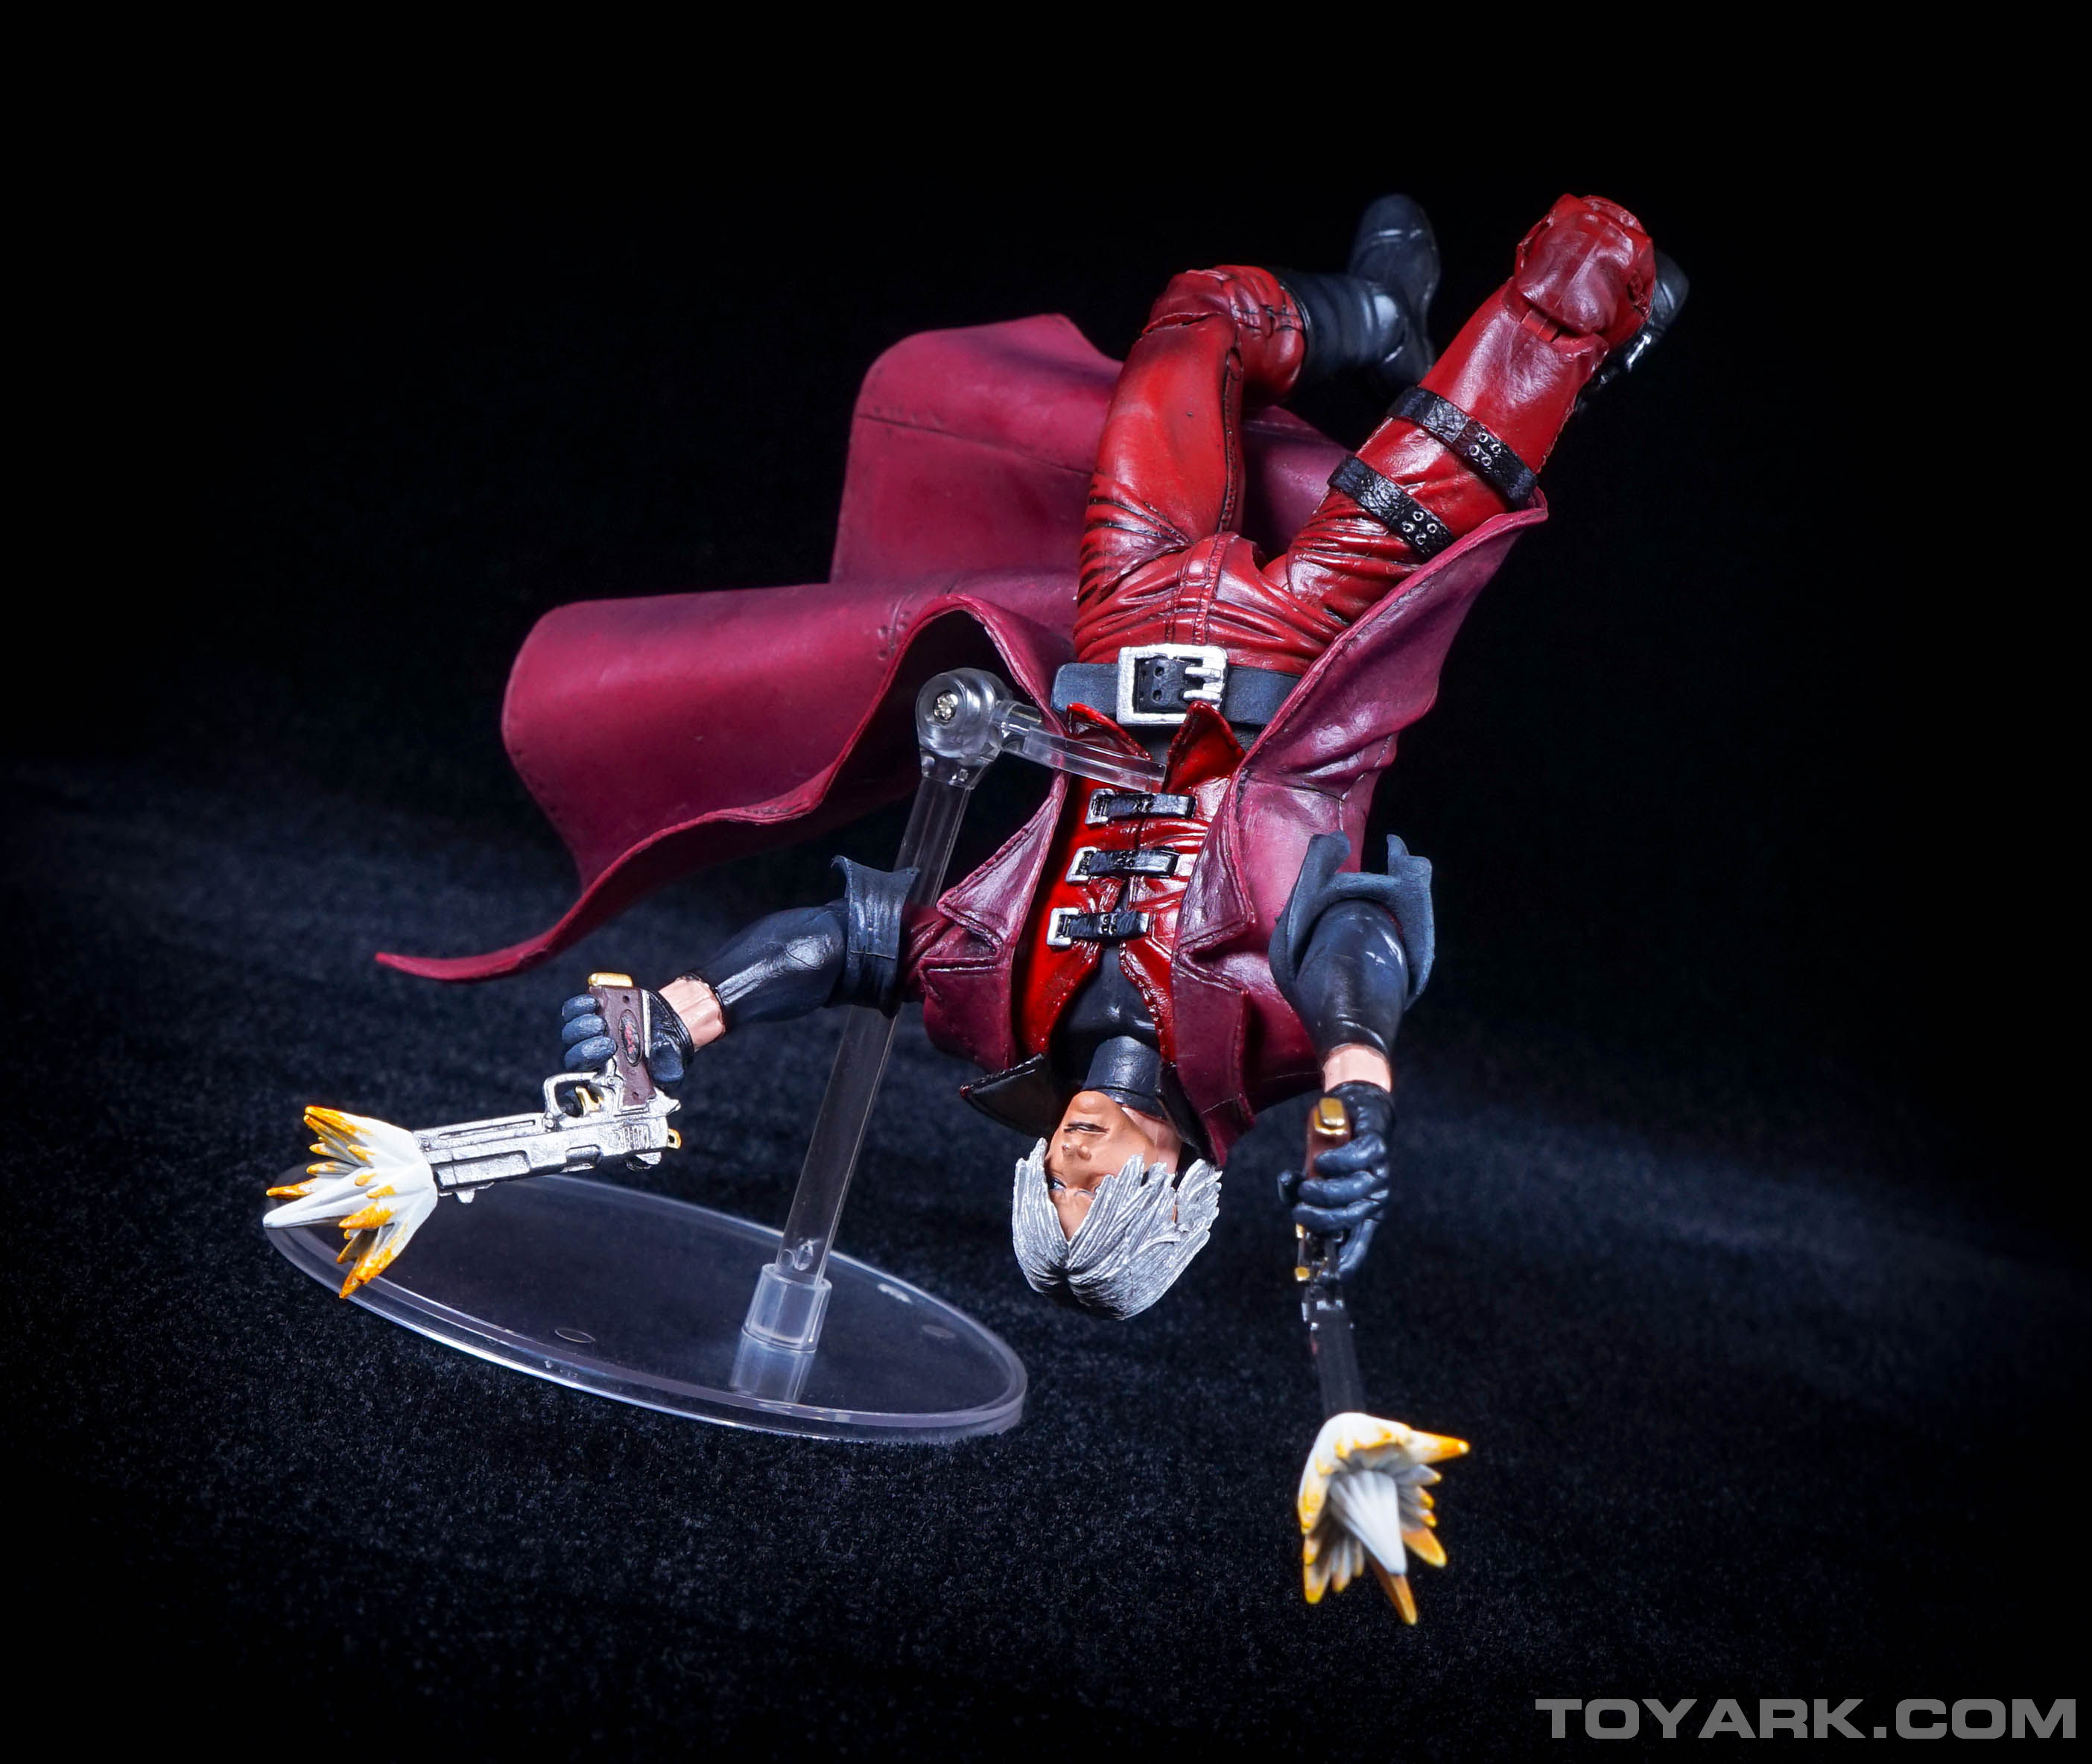 http://news.toyark.com/wp-content/uploads/sites/4/2015/06/NECA-Devil-May-Cry-Dante-041.jpg